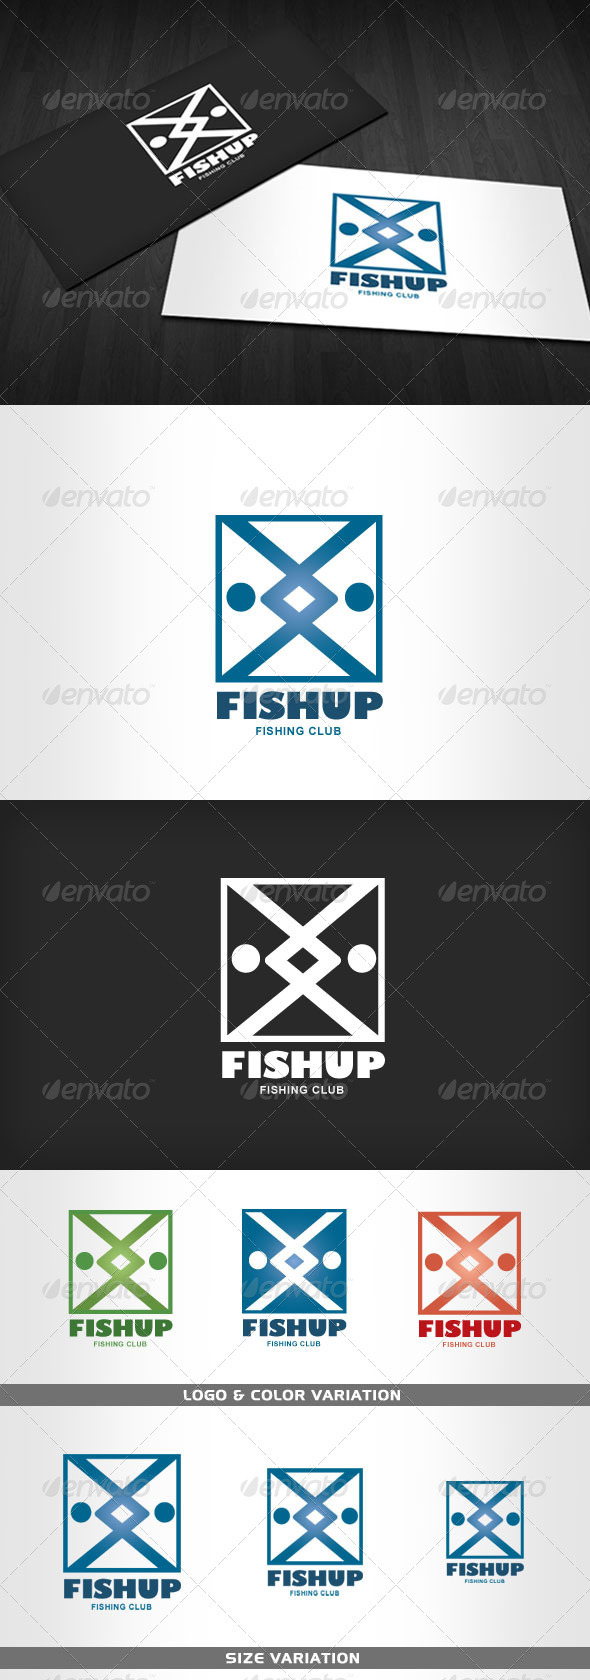 FISHUP - Fishing Club Logo - Animals Logo Templates